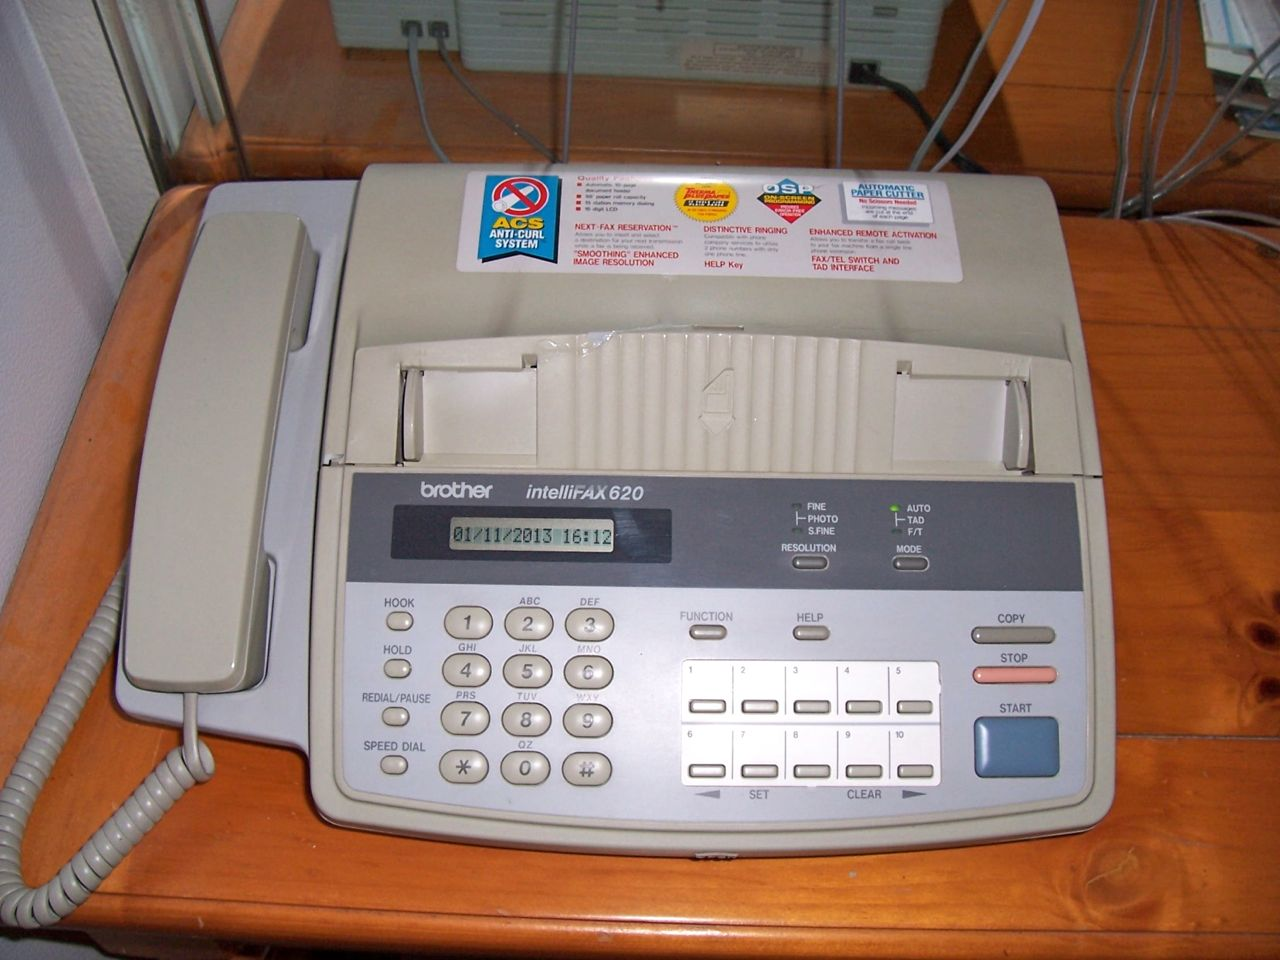 fax machine for home